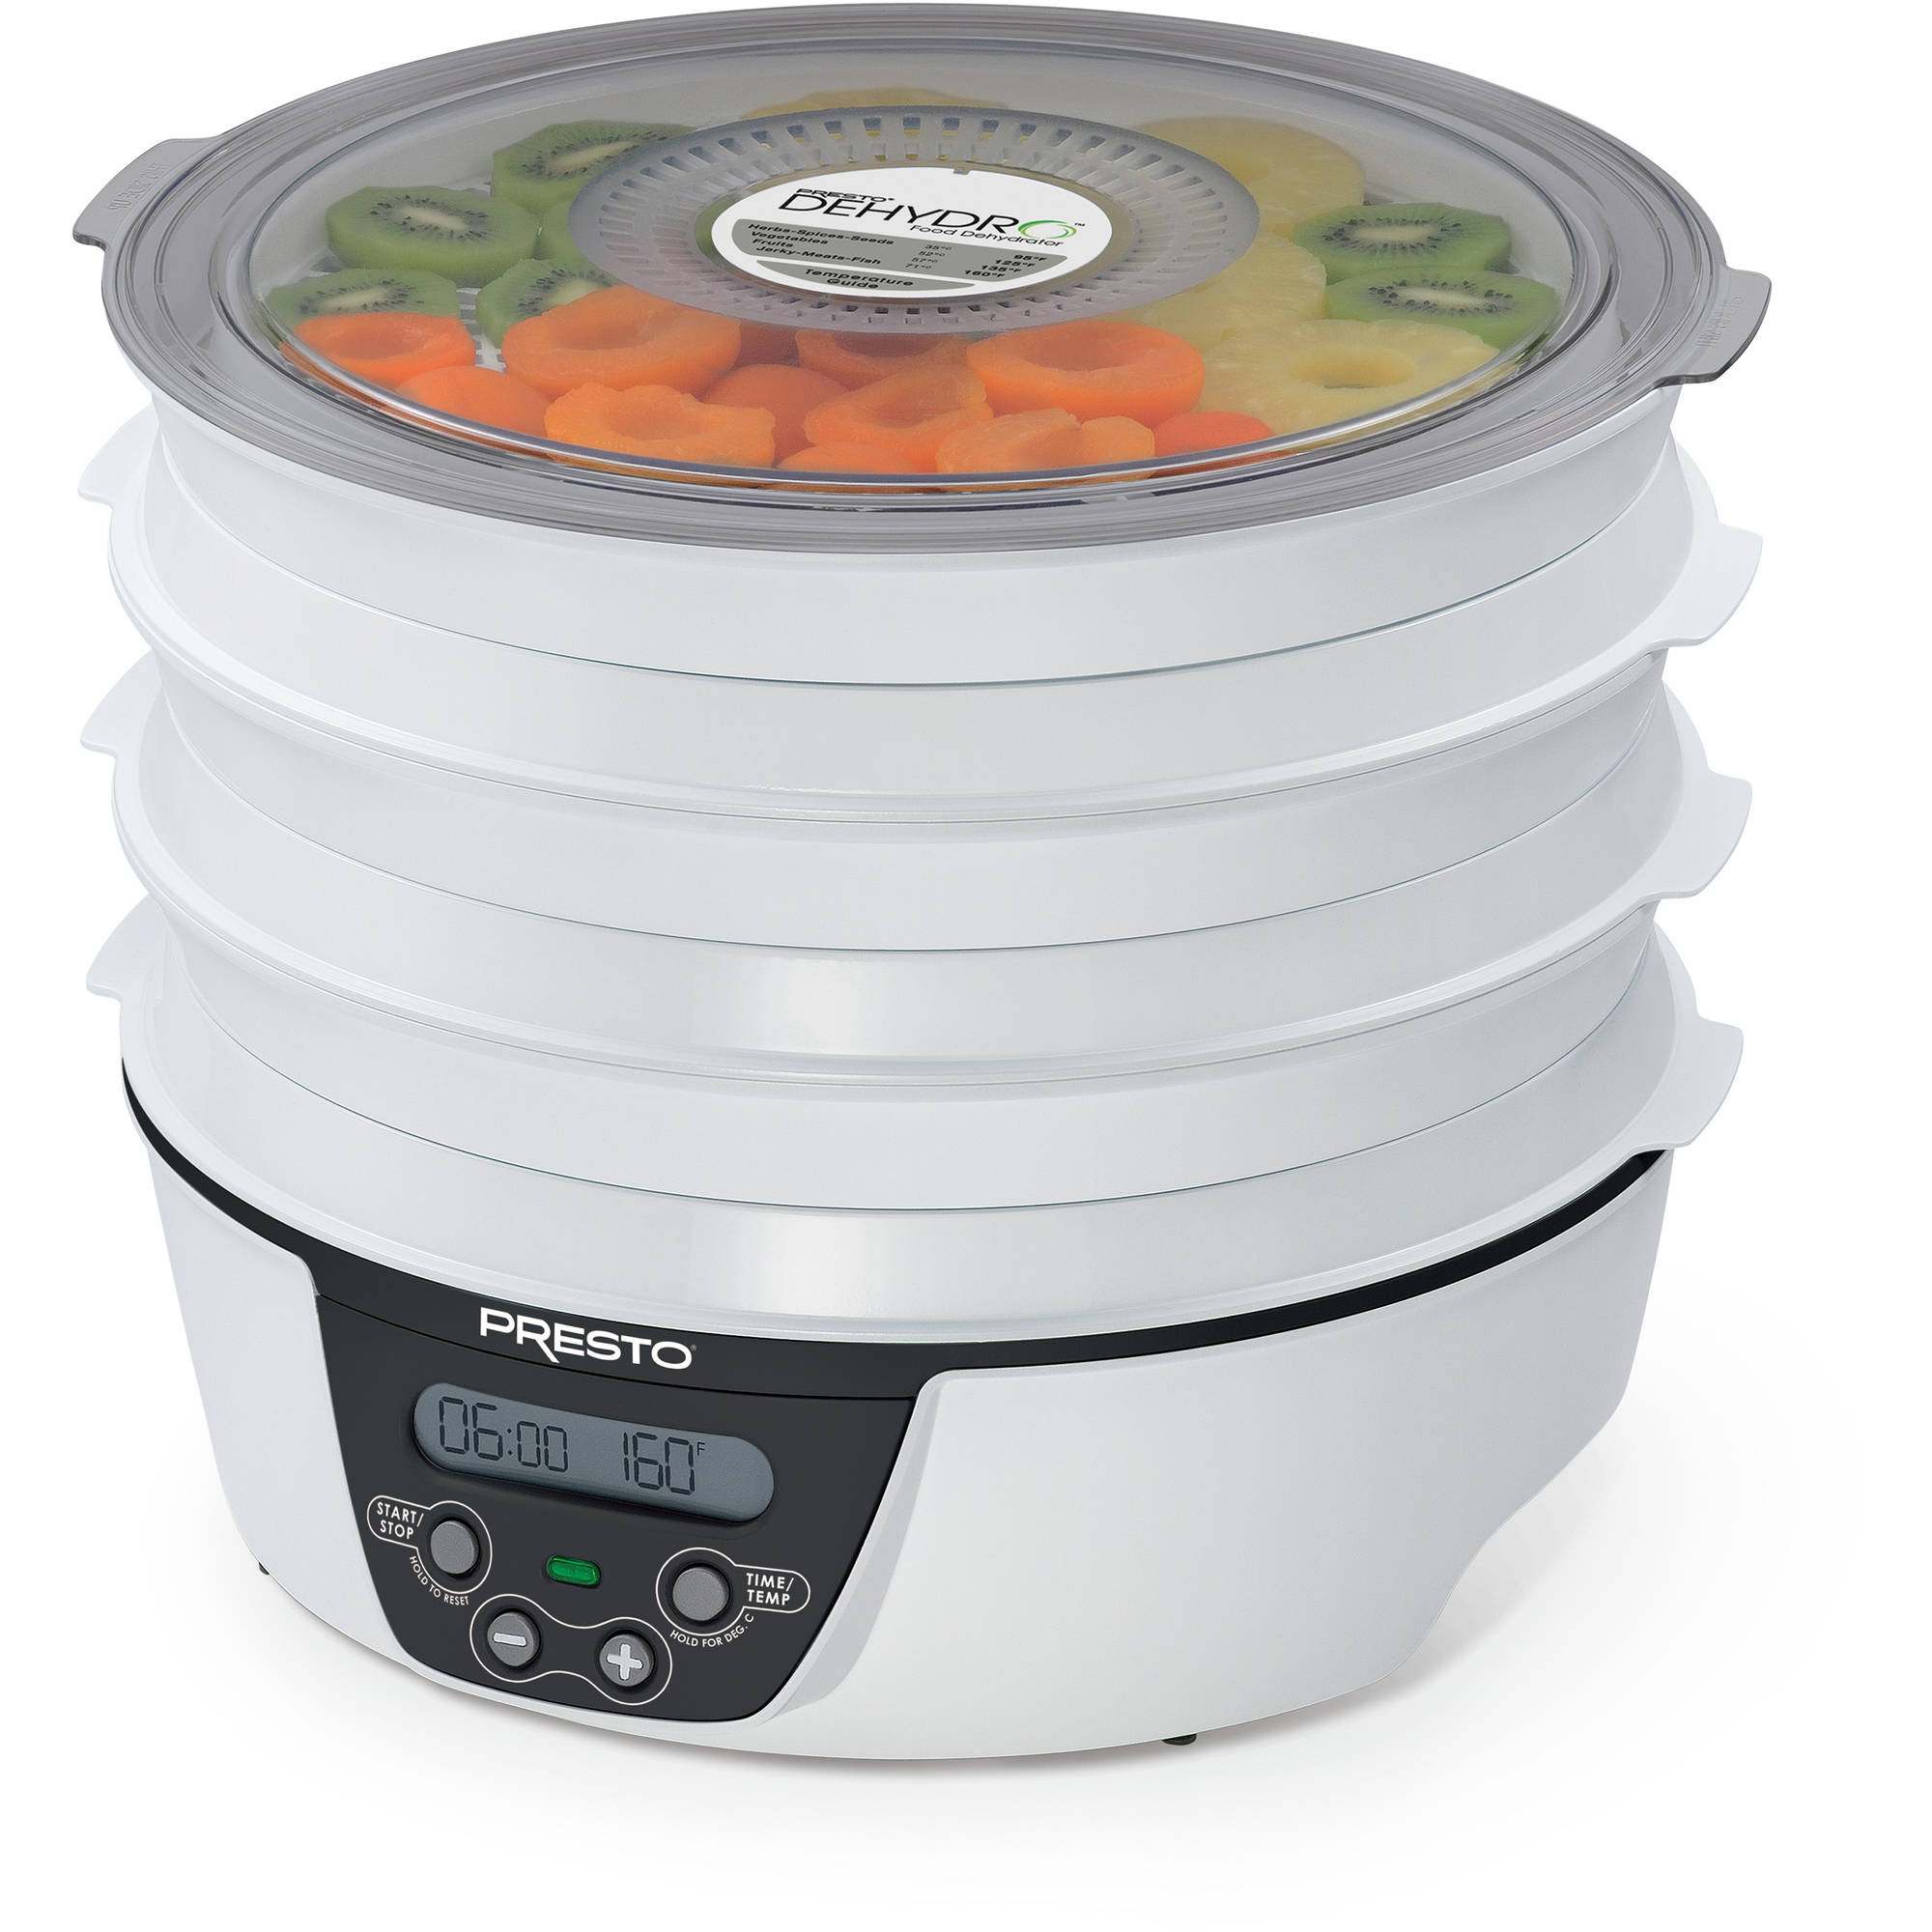 Presto Dehydro Digital Electric Food Dehydrator